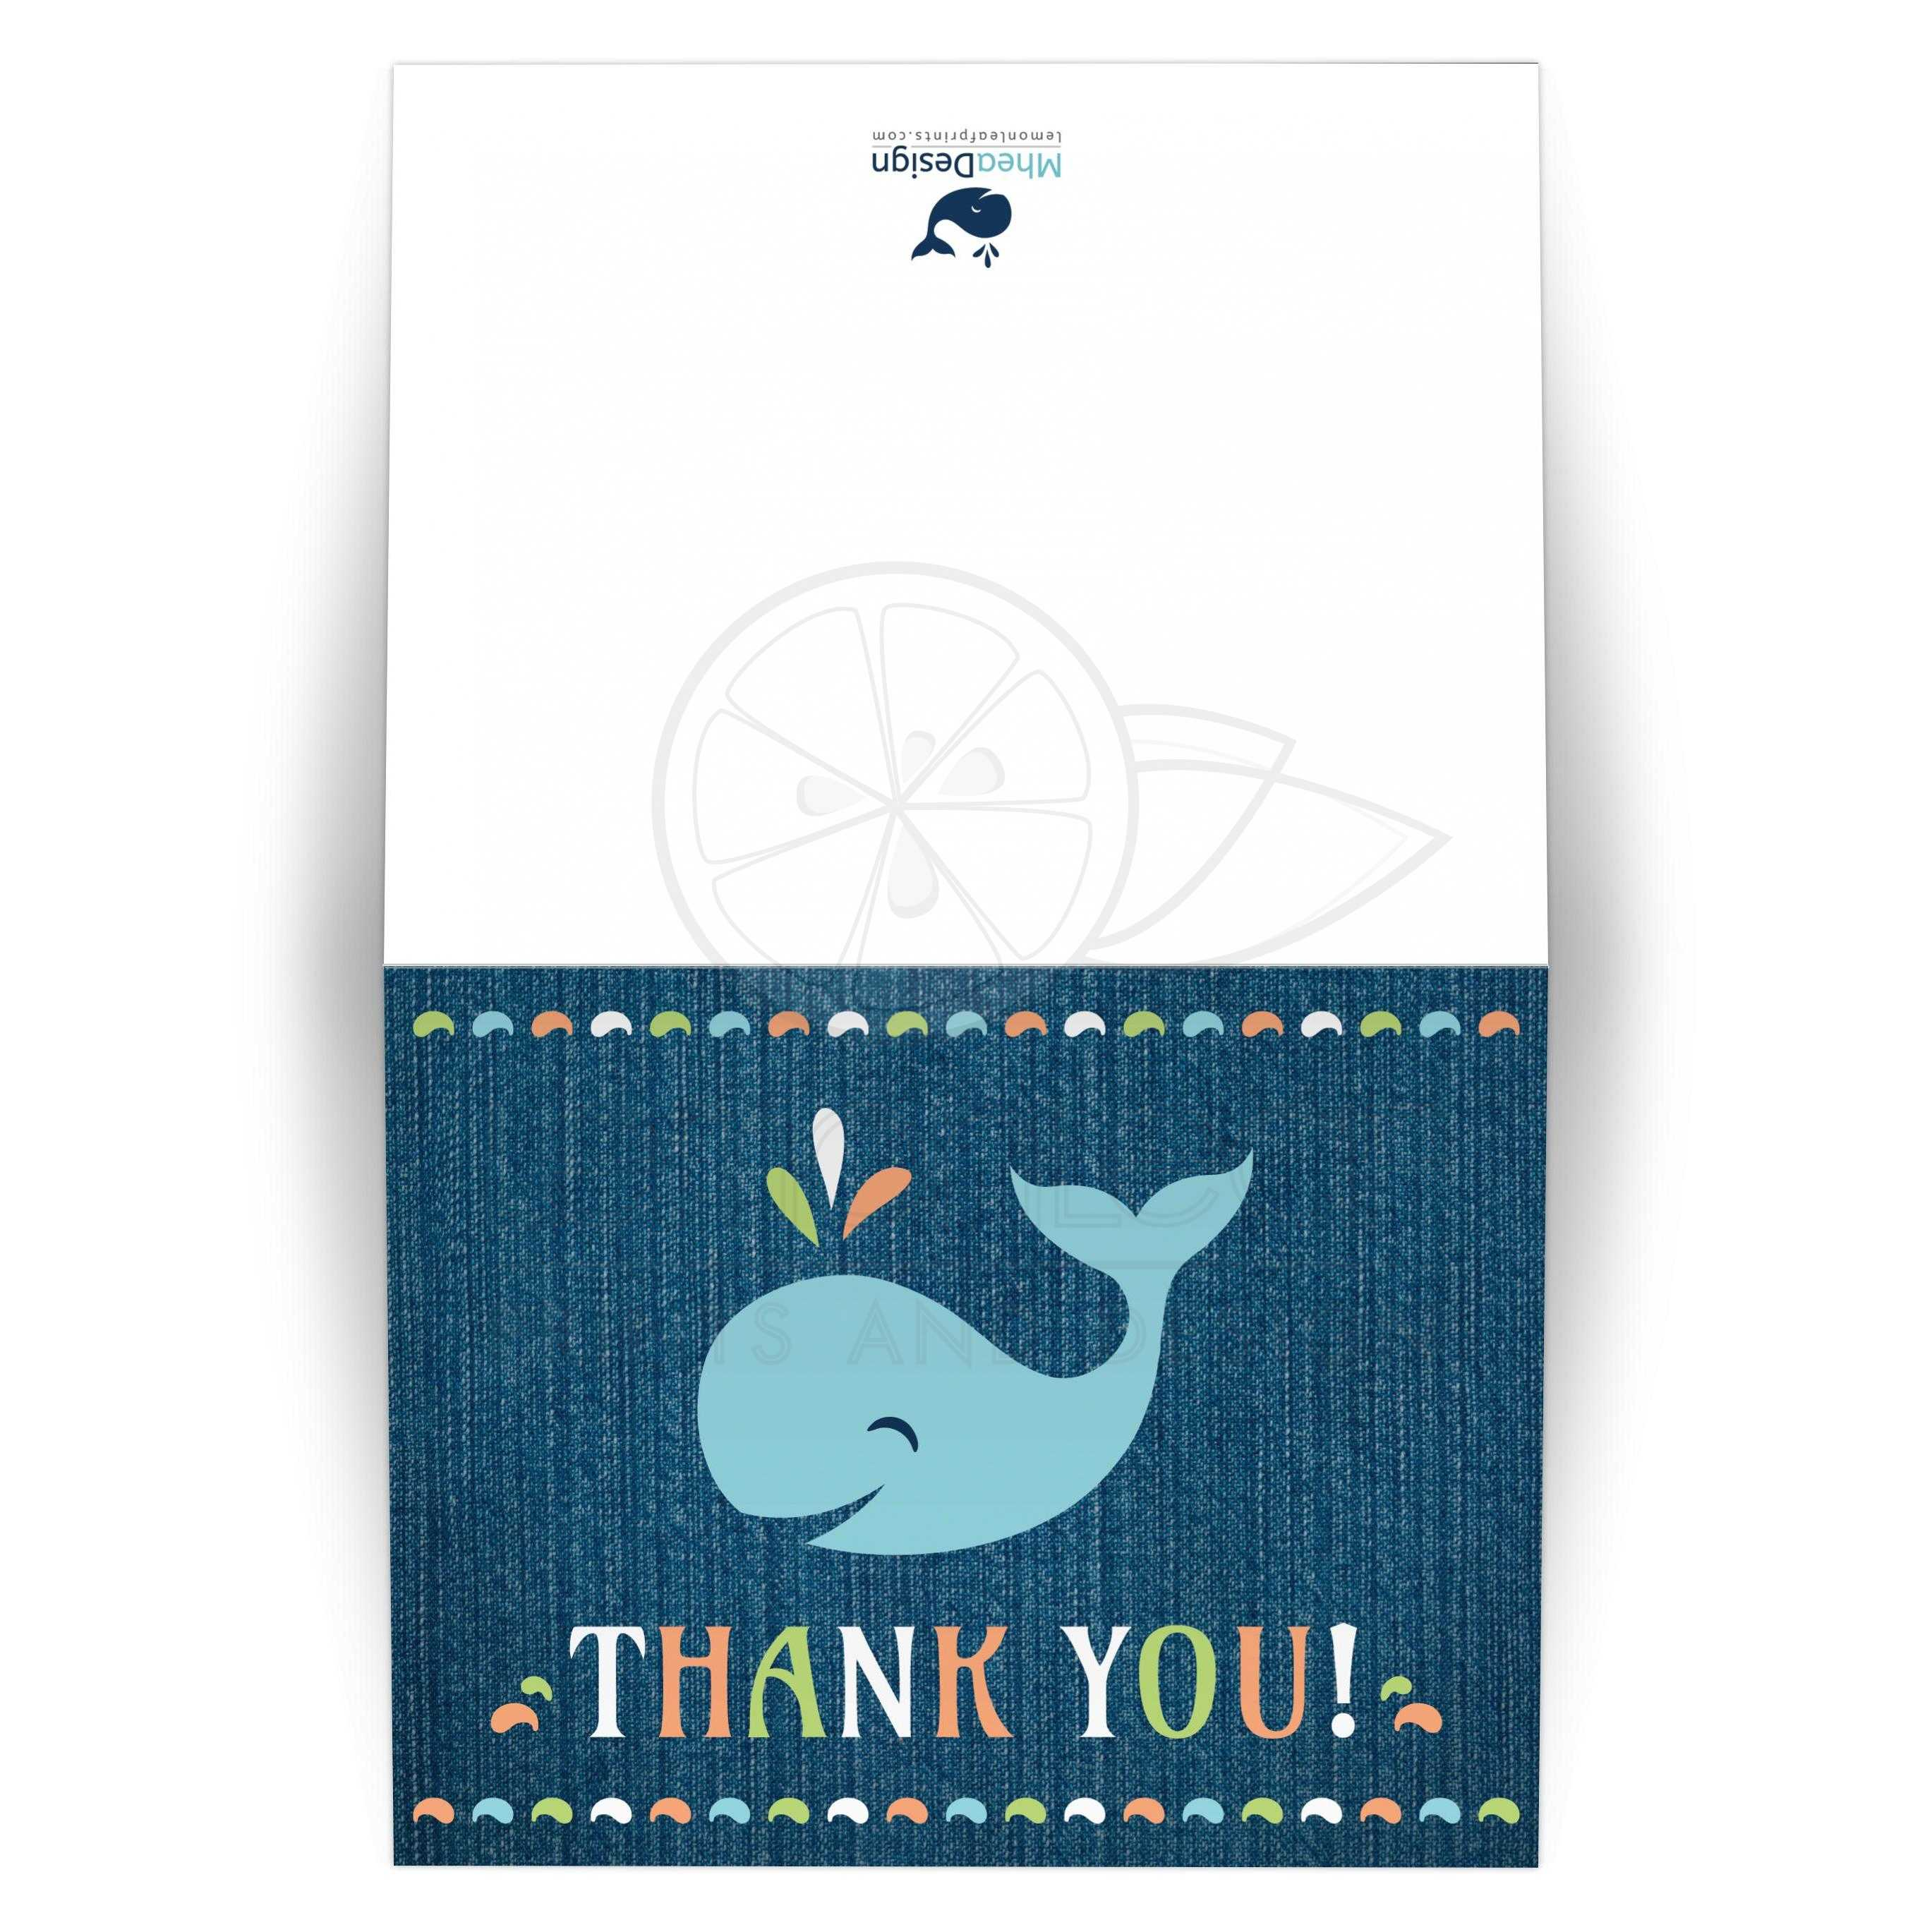 Whale on blue denim, cute birthday or baby shower thank you card | Under the sea theme